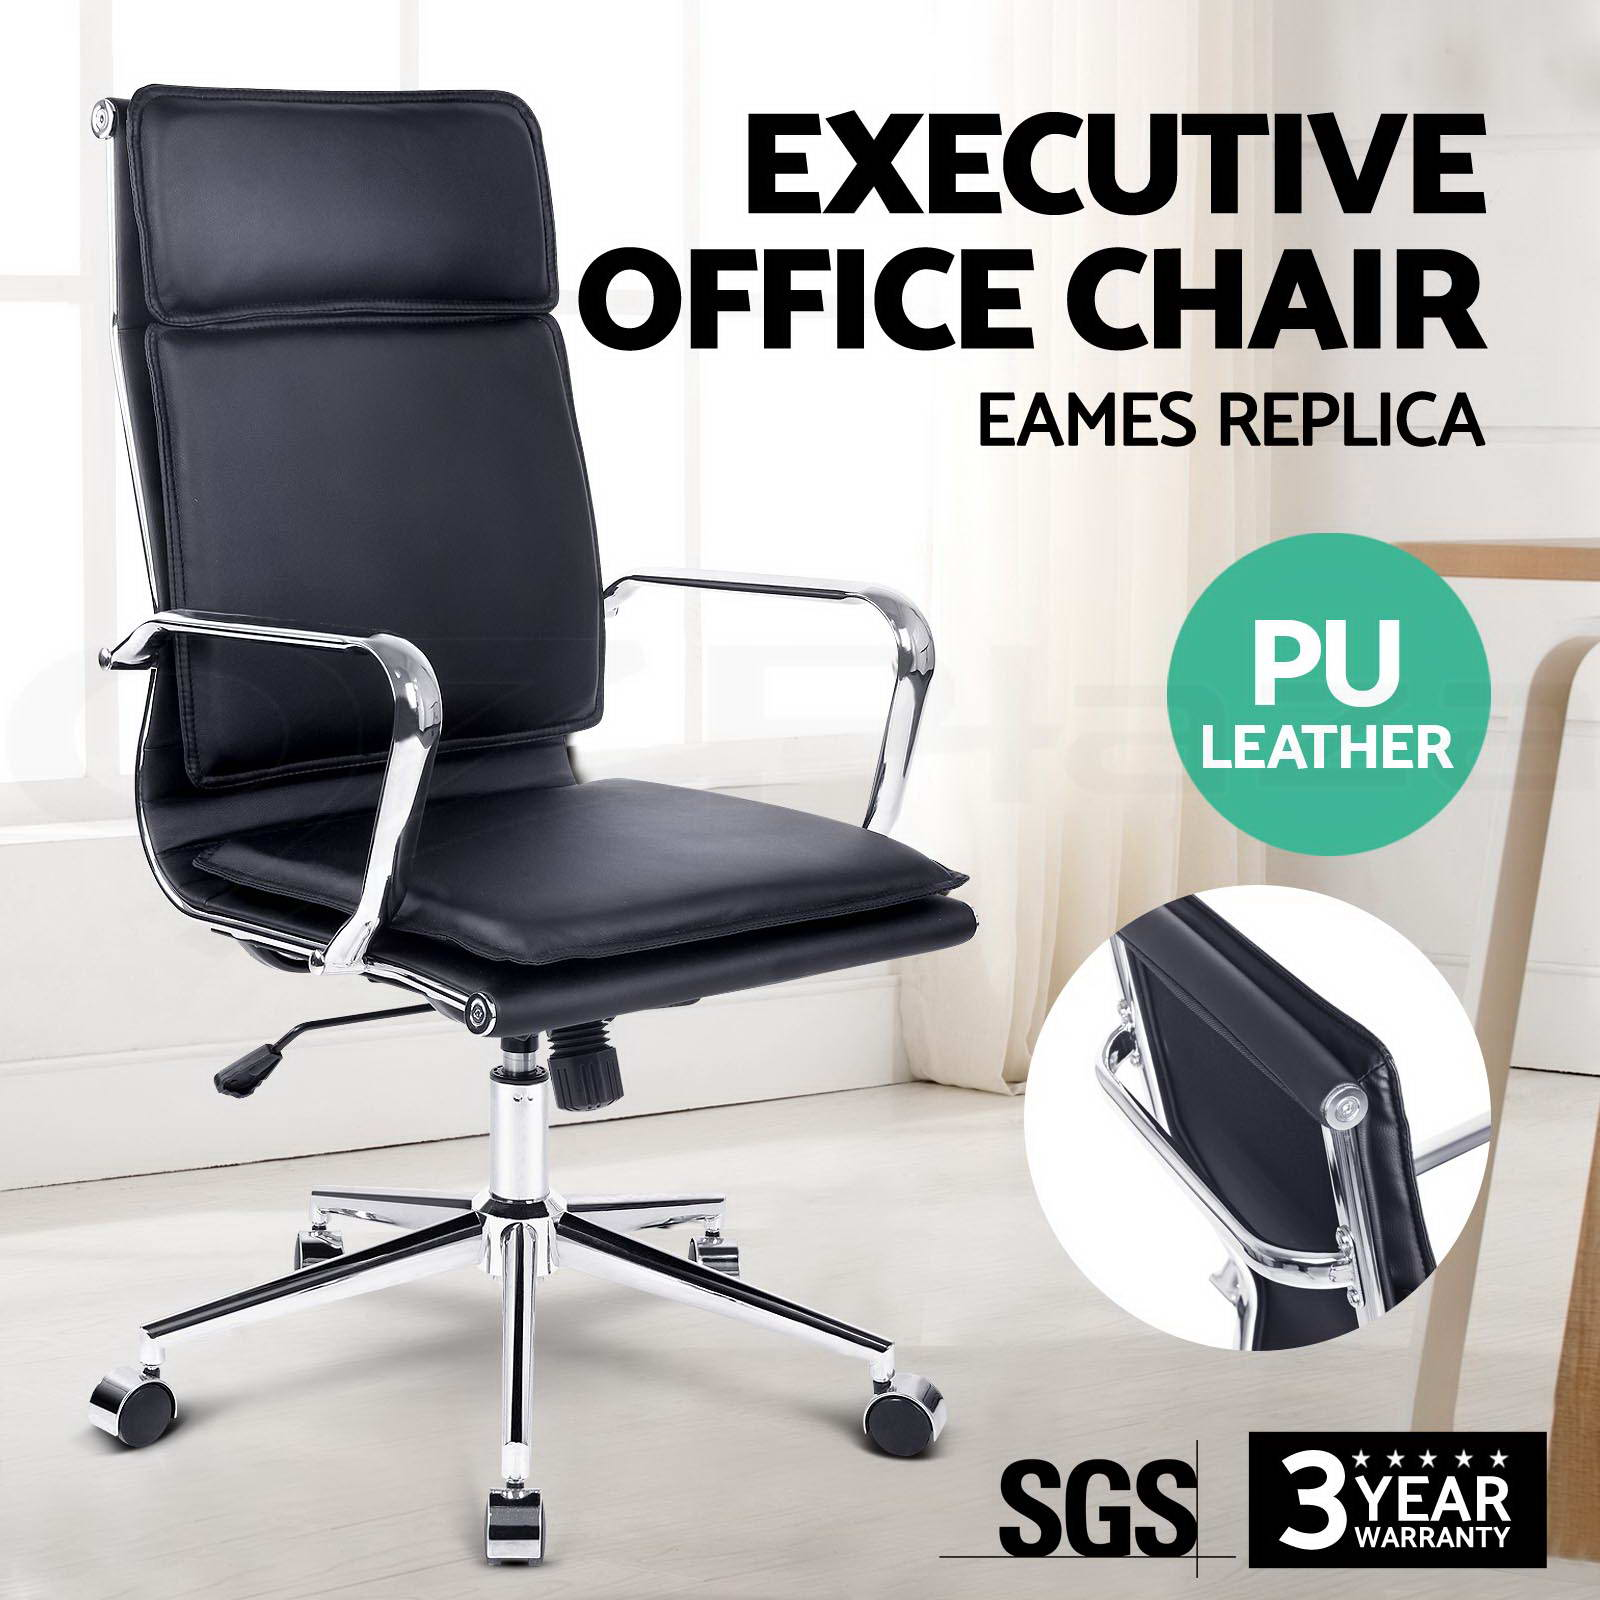 point massage executive office computer chair heated recliner black pu